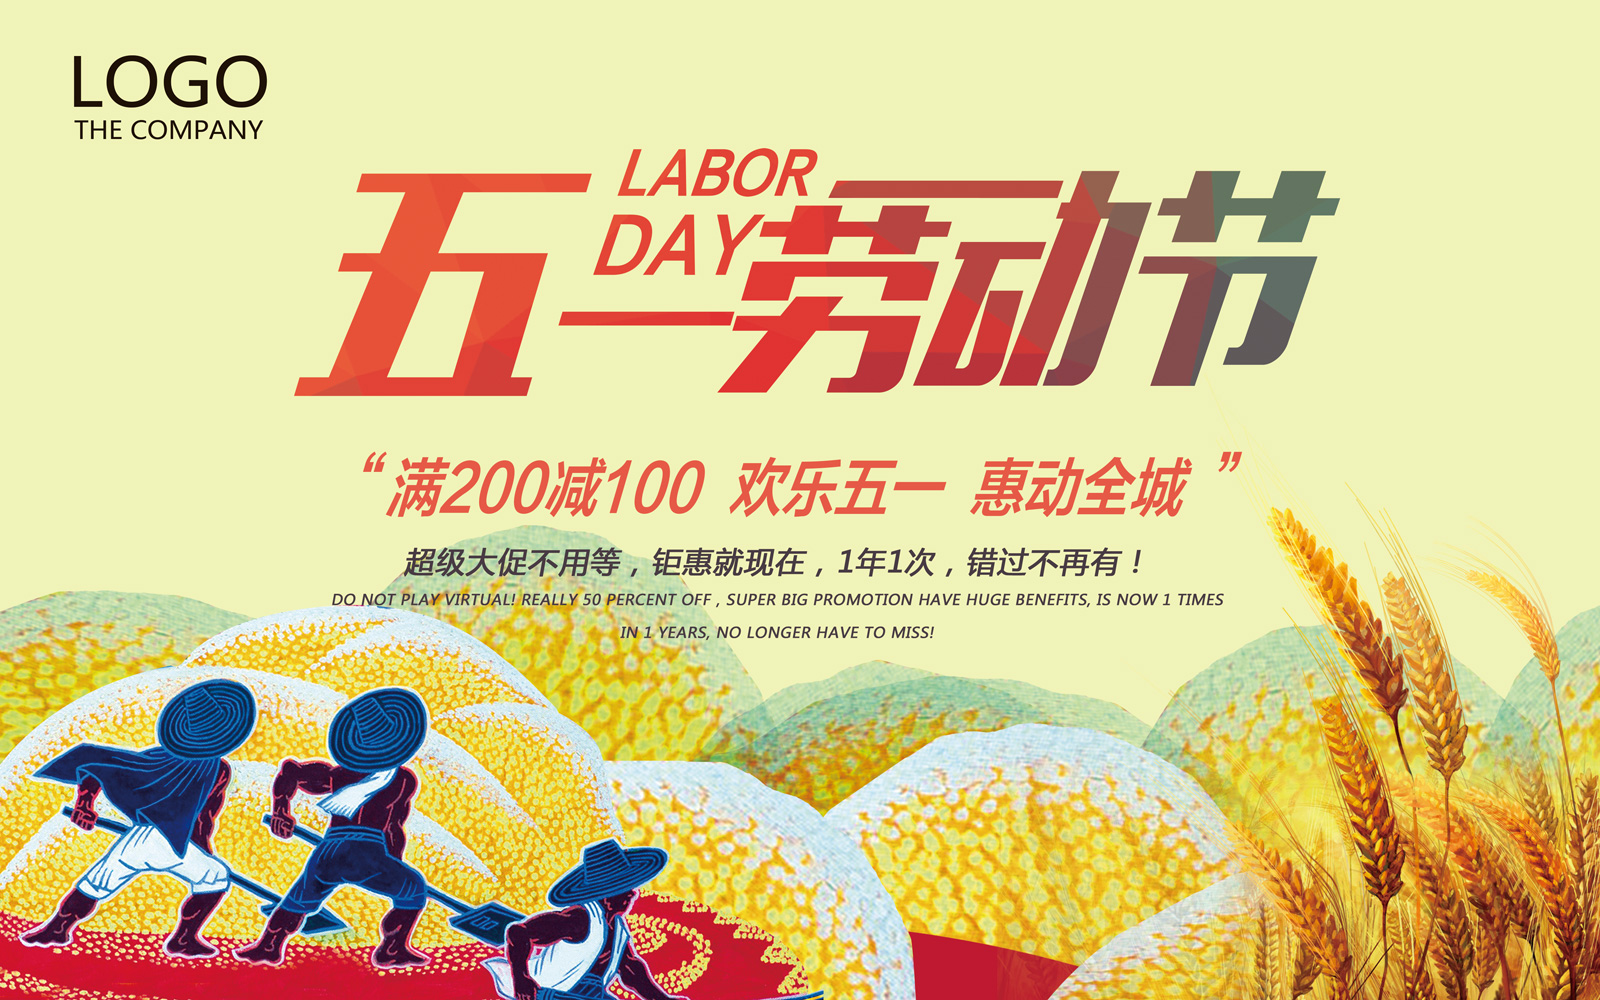 chinesefontdesign.com 2017 04 28 21 19 47 Chinese labor day promotion poster design PSD File Free Download Promotional poster psd Mall poster design psd Chinese Internet advertising banners psd Chinas labor day psd